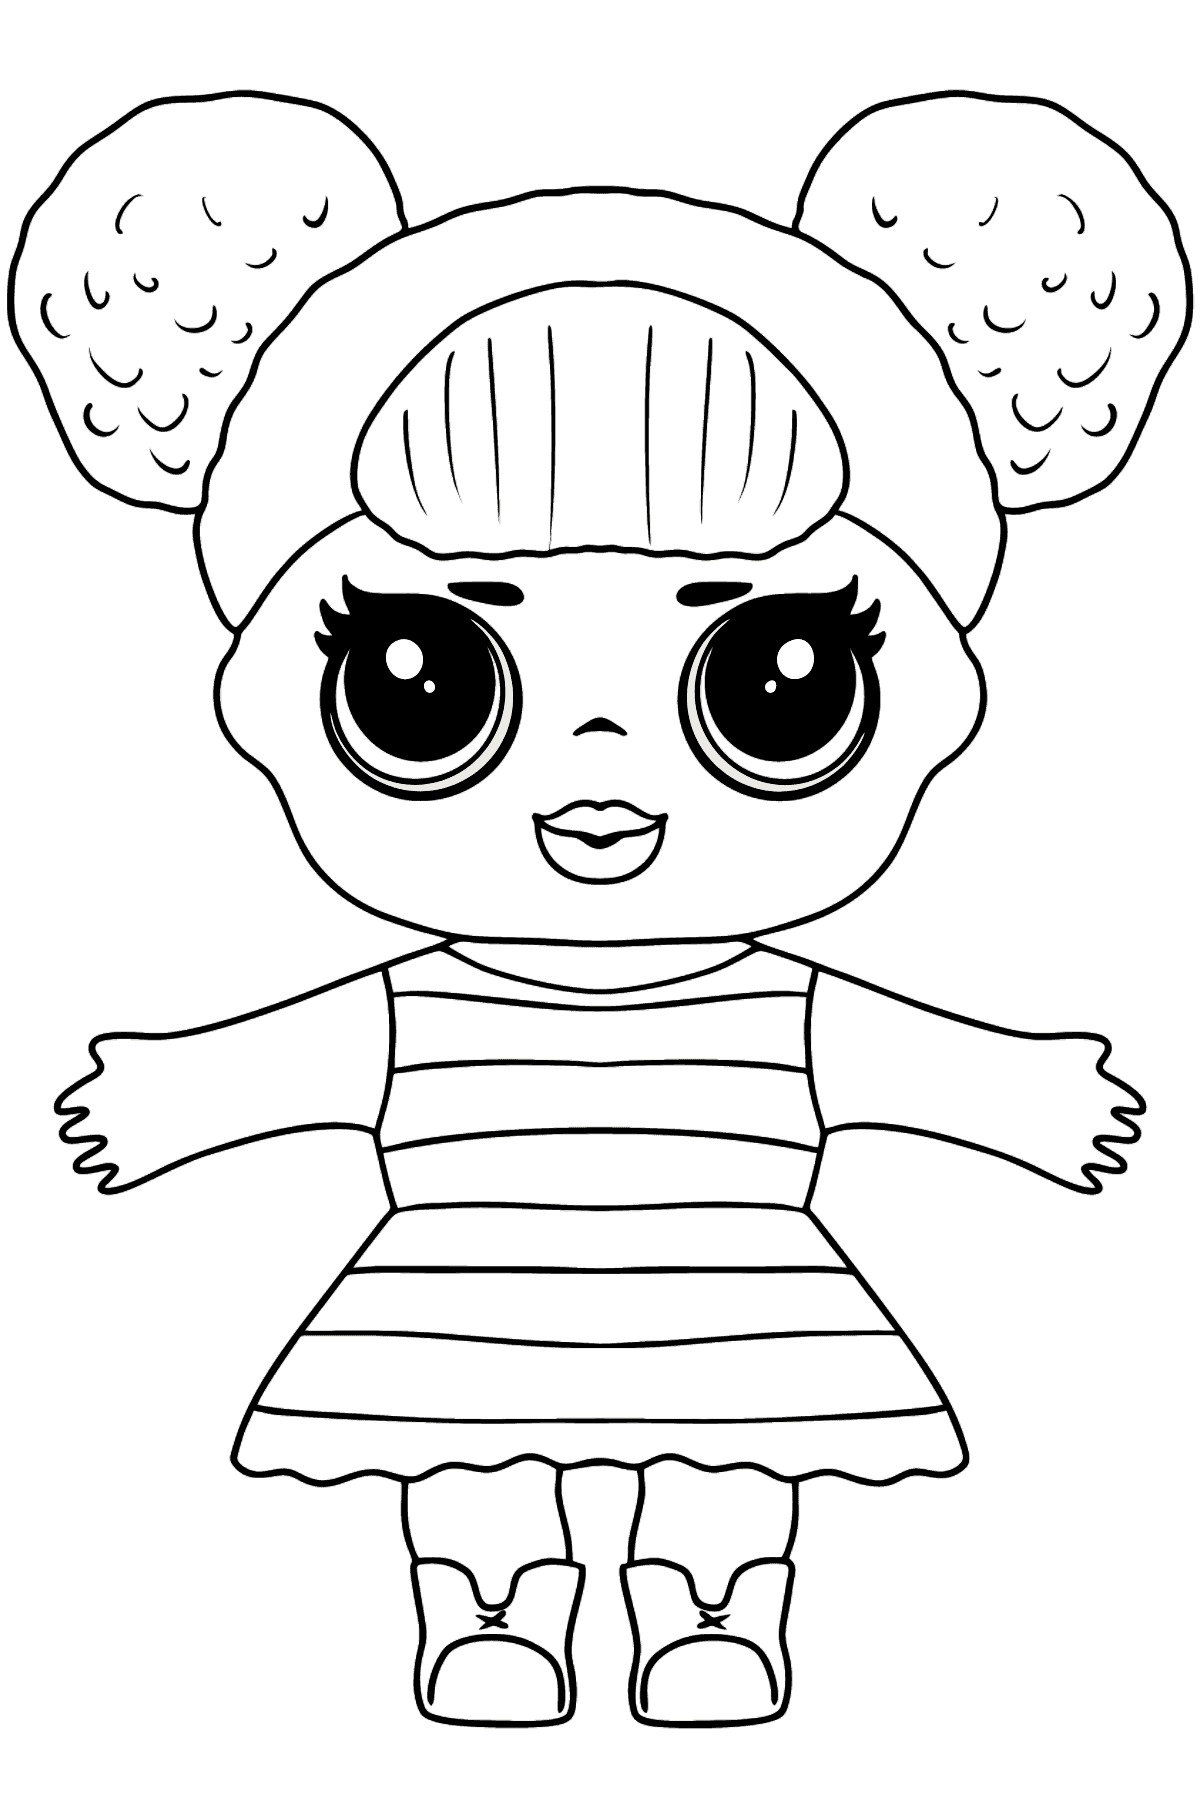 L.O.L. Surprise Doll Queen Bee - Coloring Pages for Kids